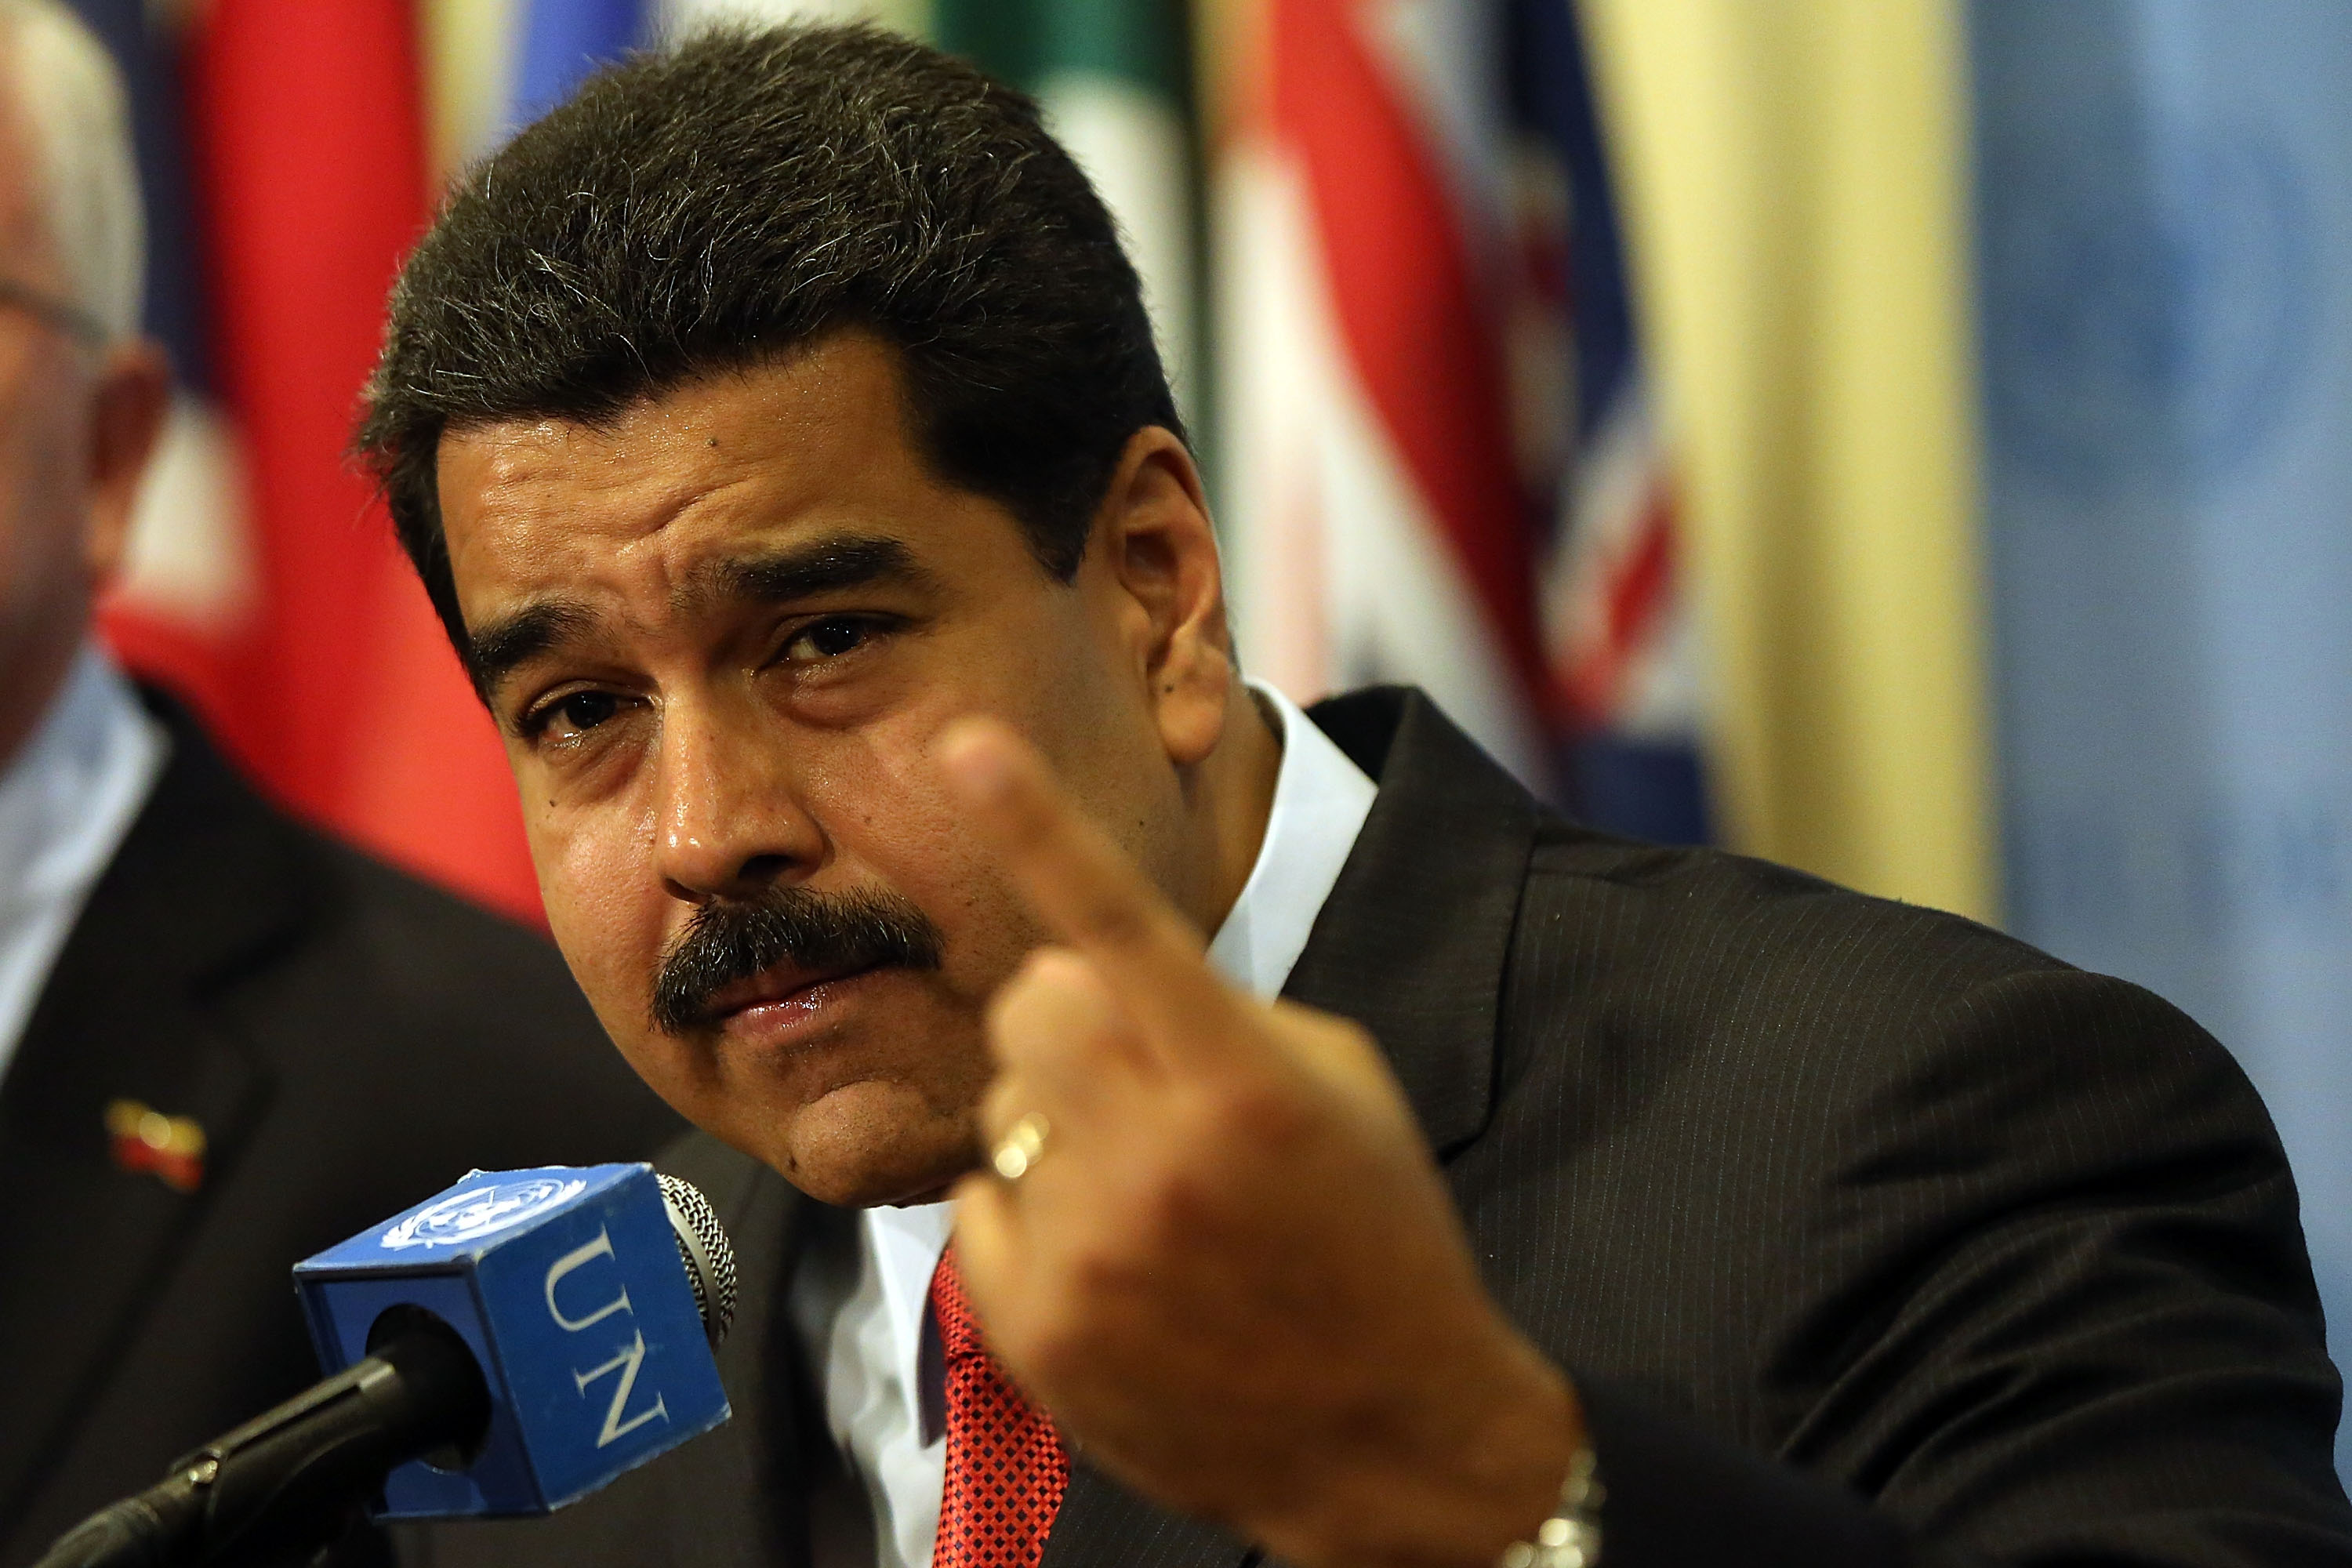 Venezuelan President Nicolas Maduro speaks to the media following a meeting with U.N. chief Ban Ki-moon at the United Nations (UN) headquarters in New York on July 28, 2015 in New York City.